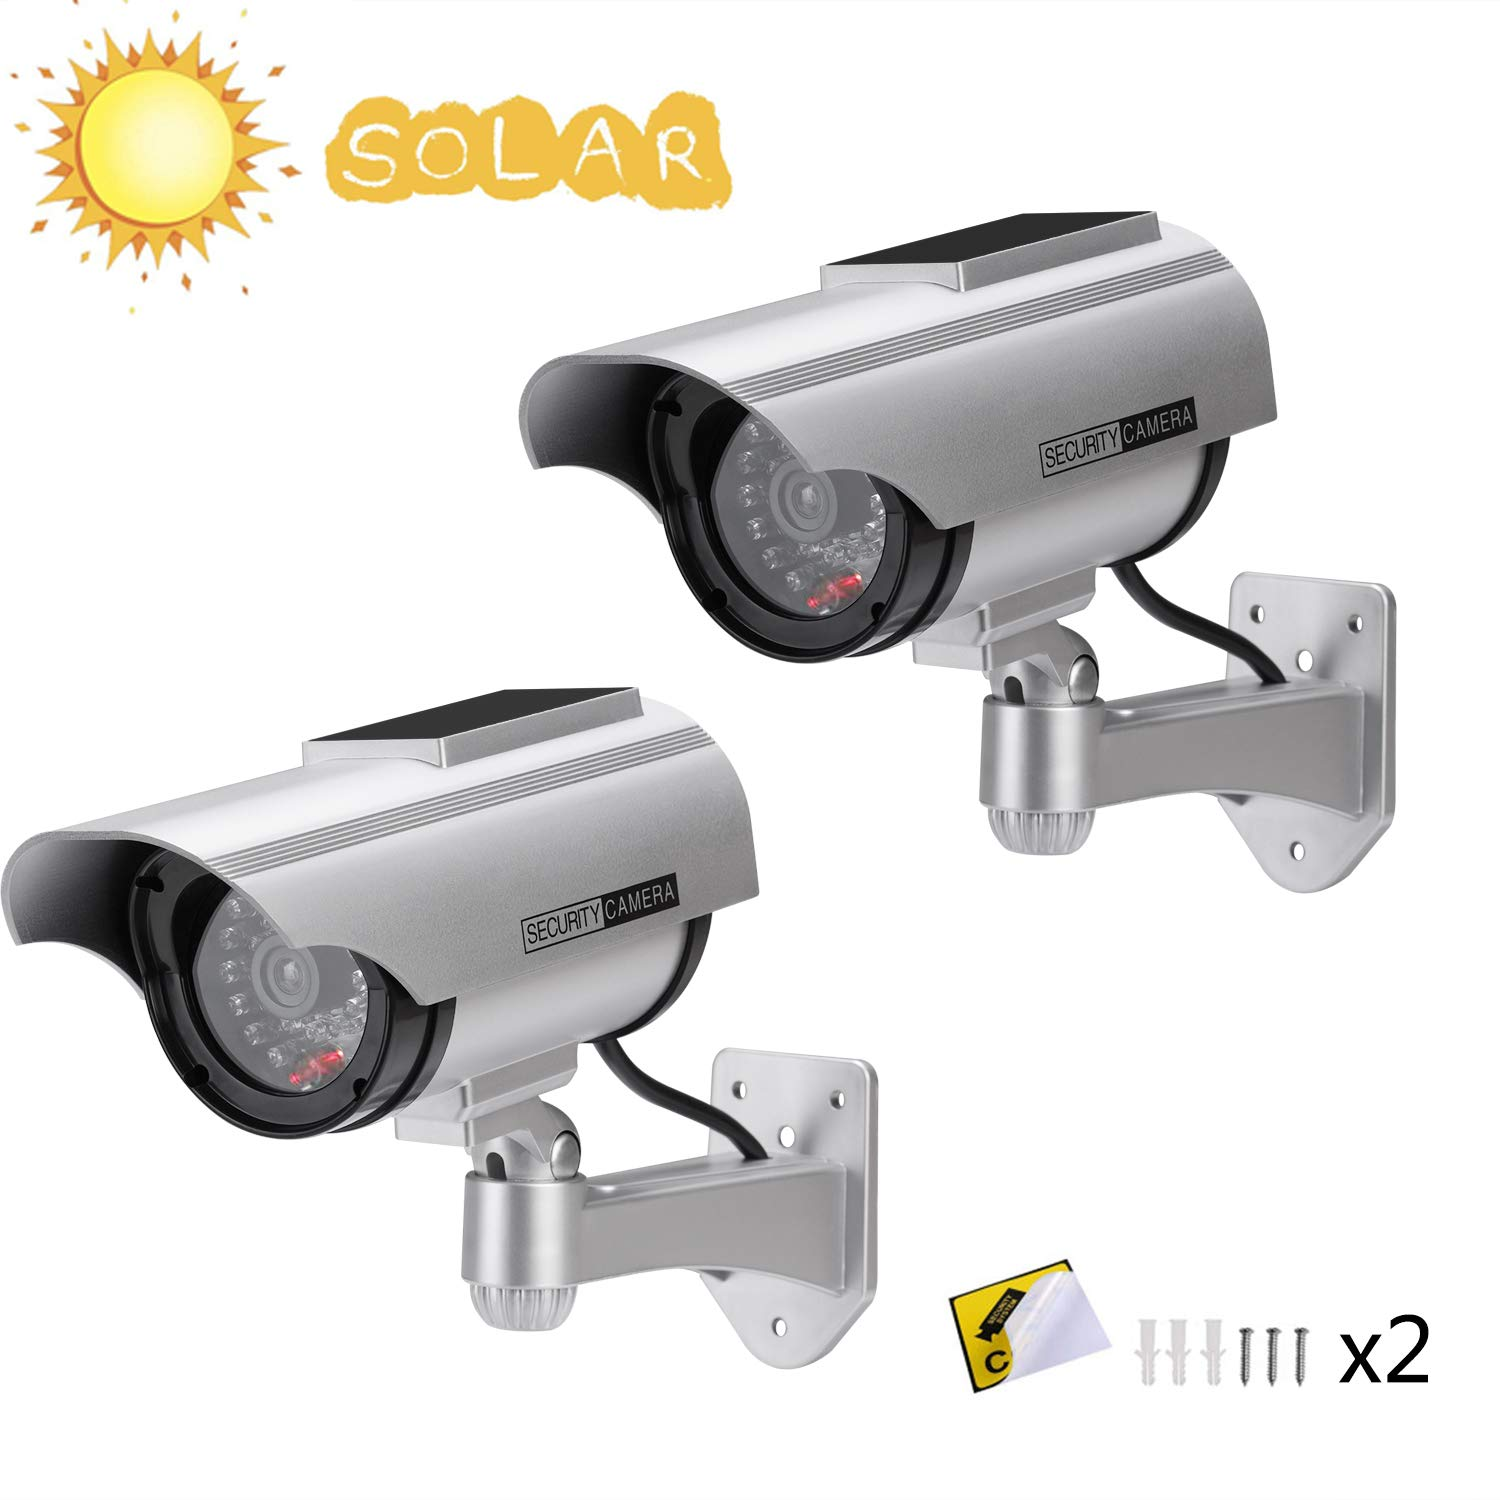 AlfaView Solar Powered Bullet Dummy Fake Surveillance Camera Security CCTV Dome Camera with LED Flashing Light for Outdoor/Indoor,Home/Business (2 Pack) by AlfaView